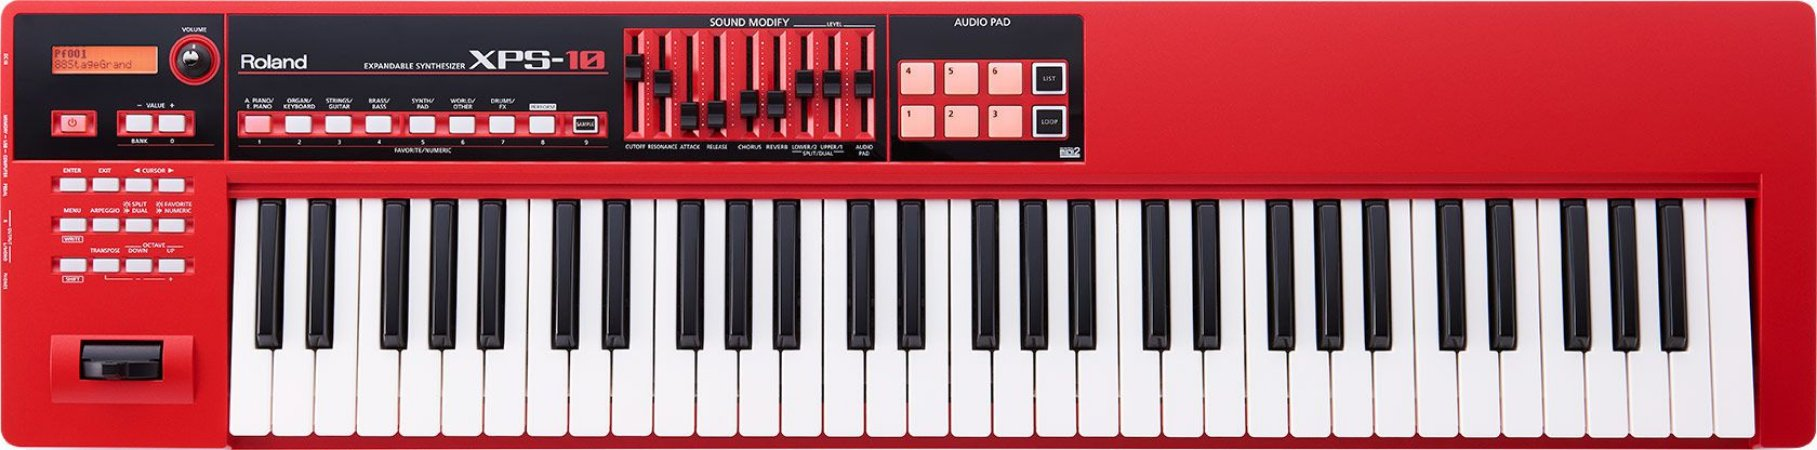 ROPLAND XPS-10 RED